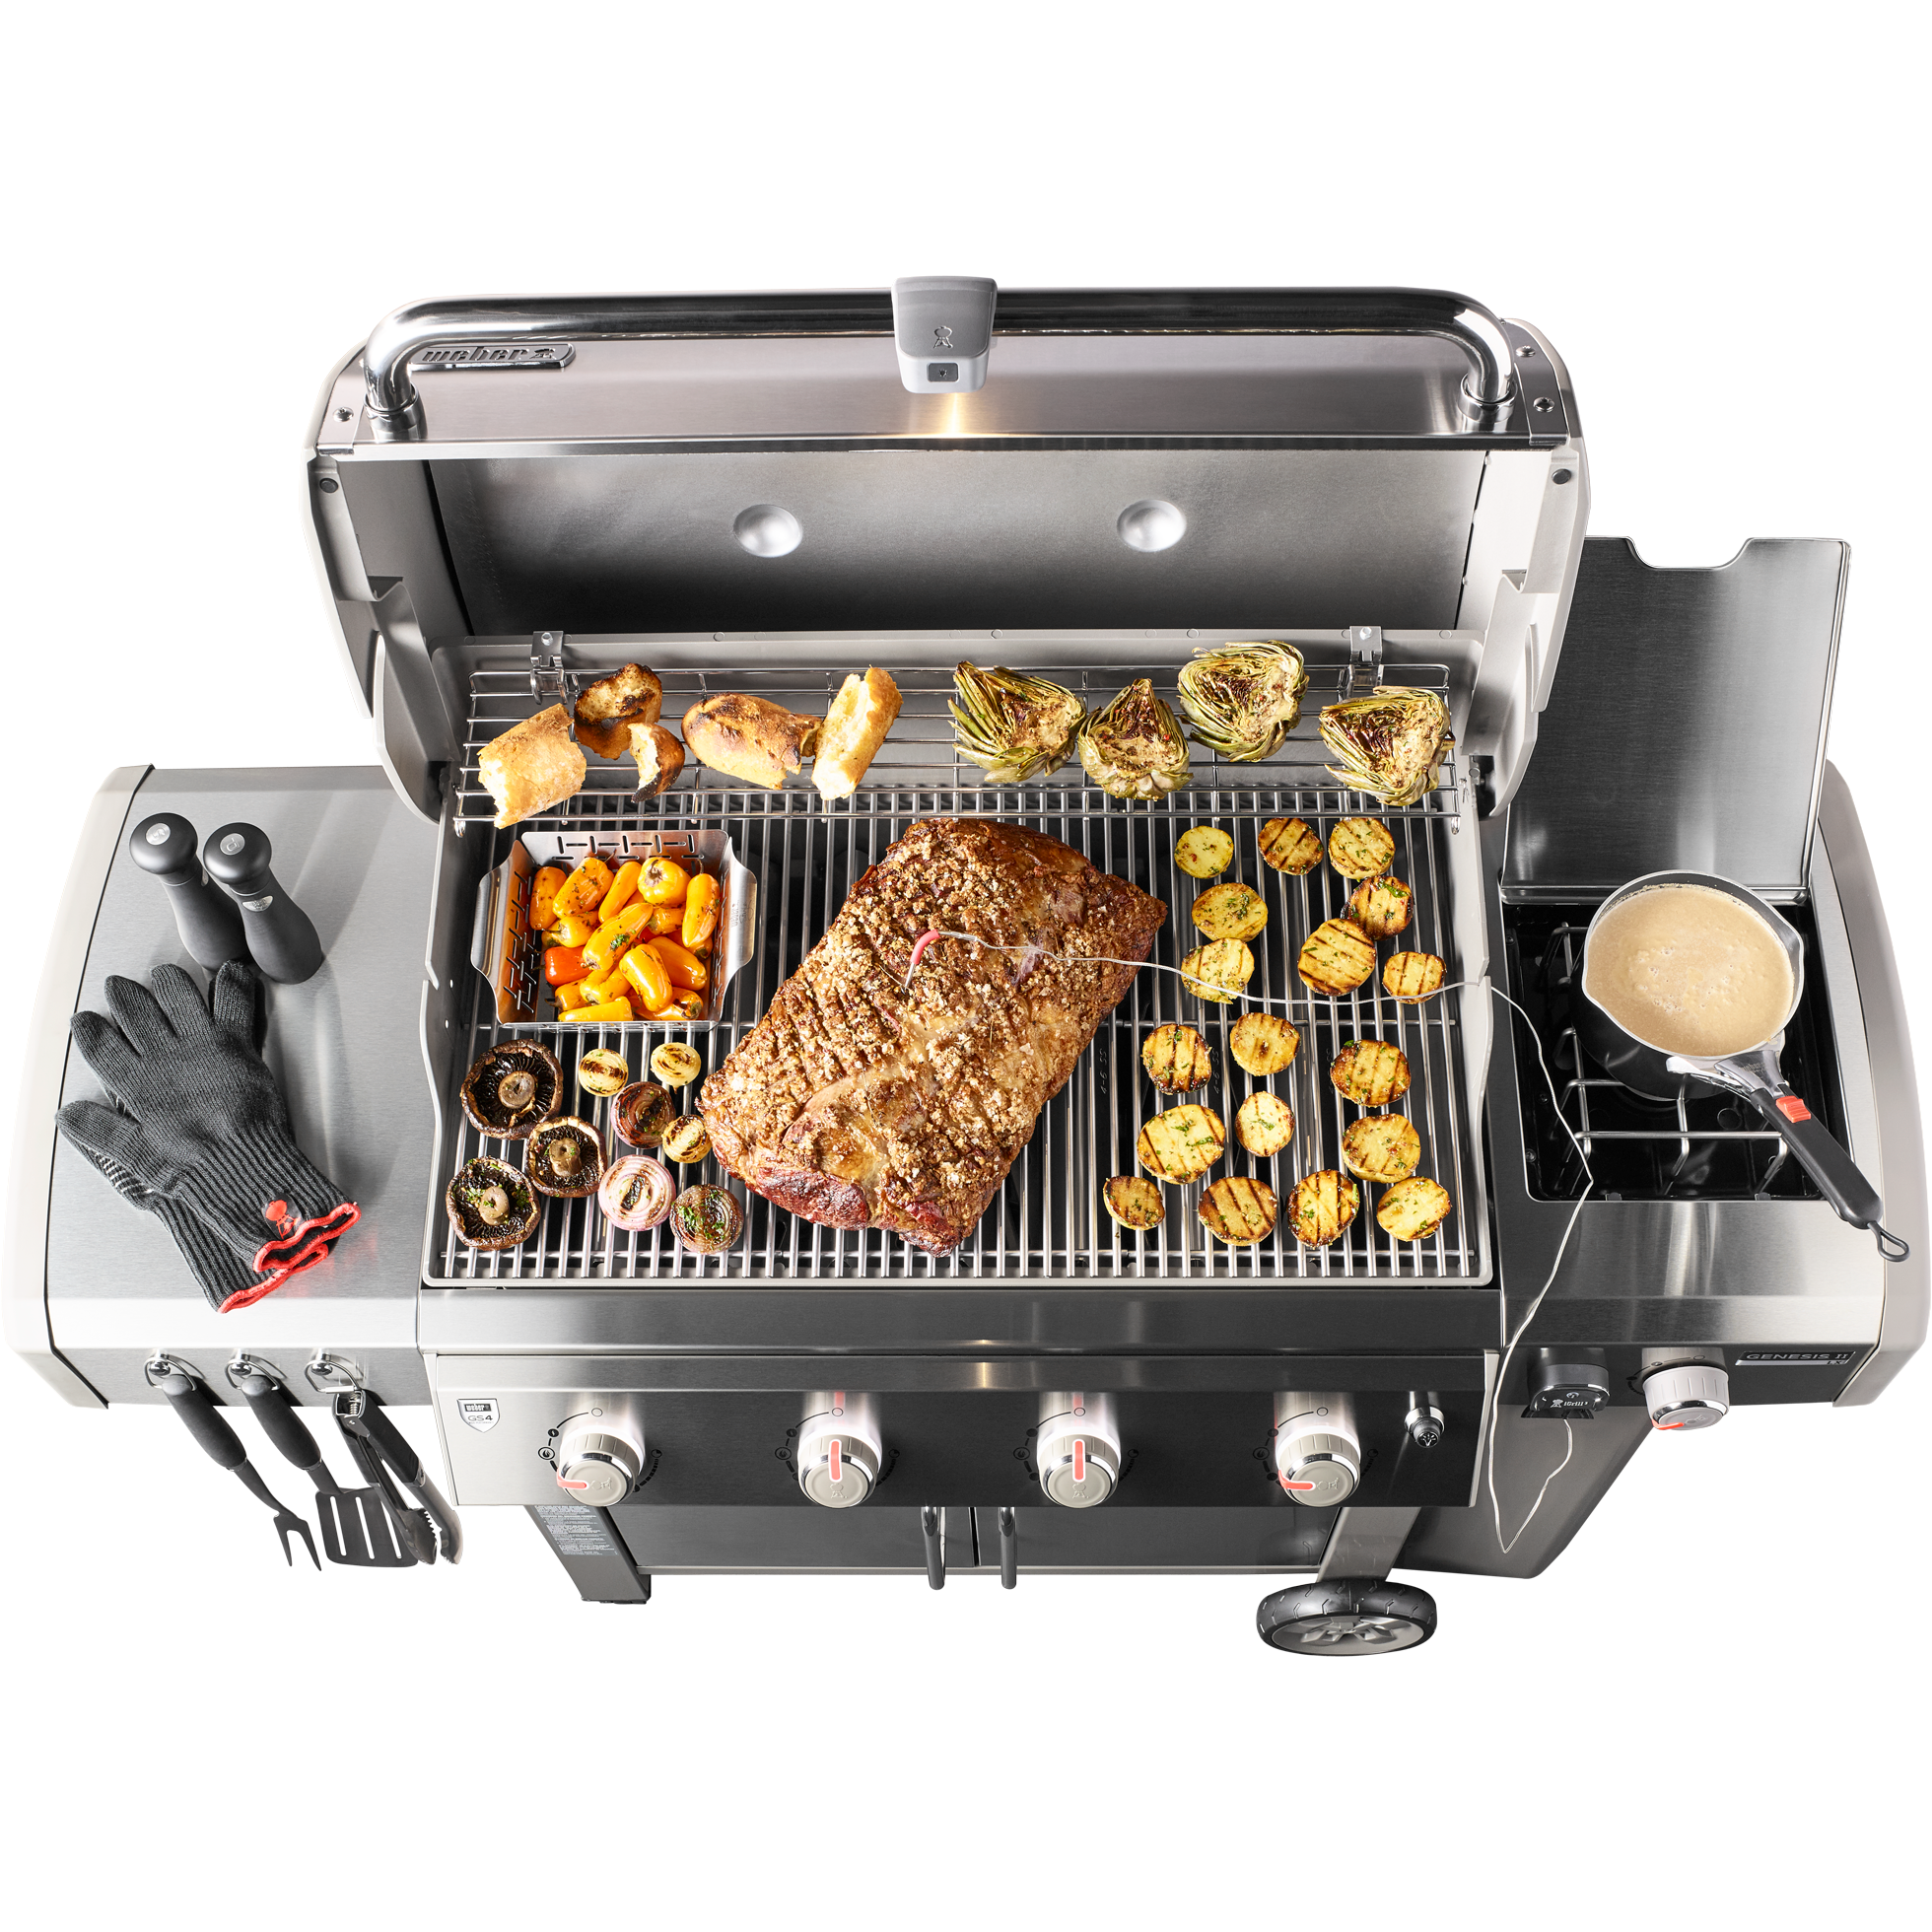 Genesis® II LX S-440 GBS Gas Barbecue